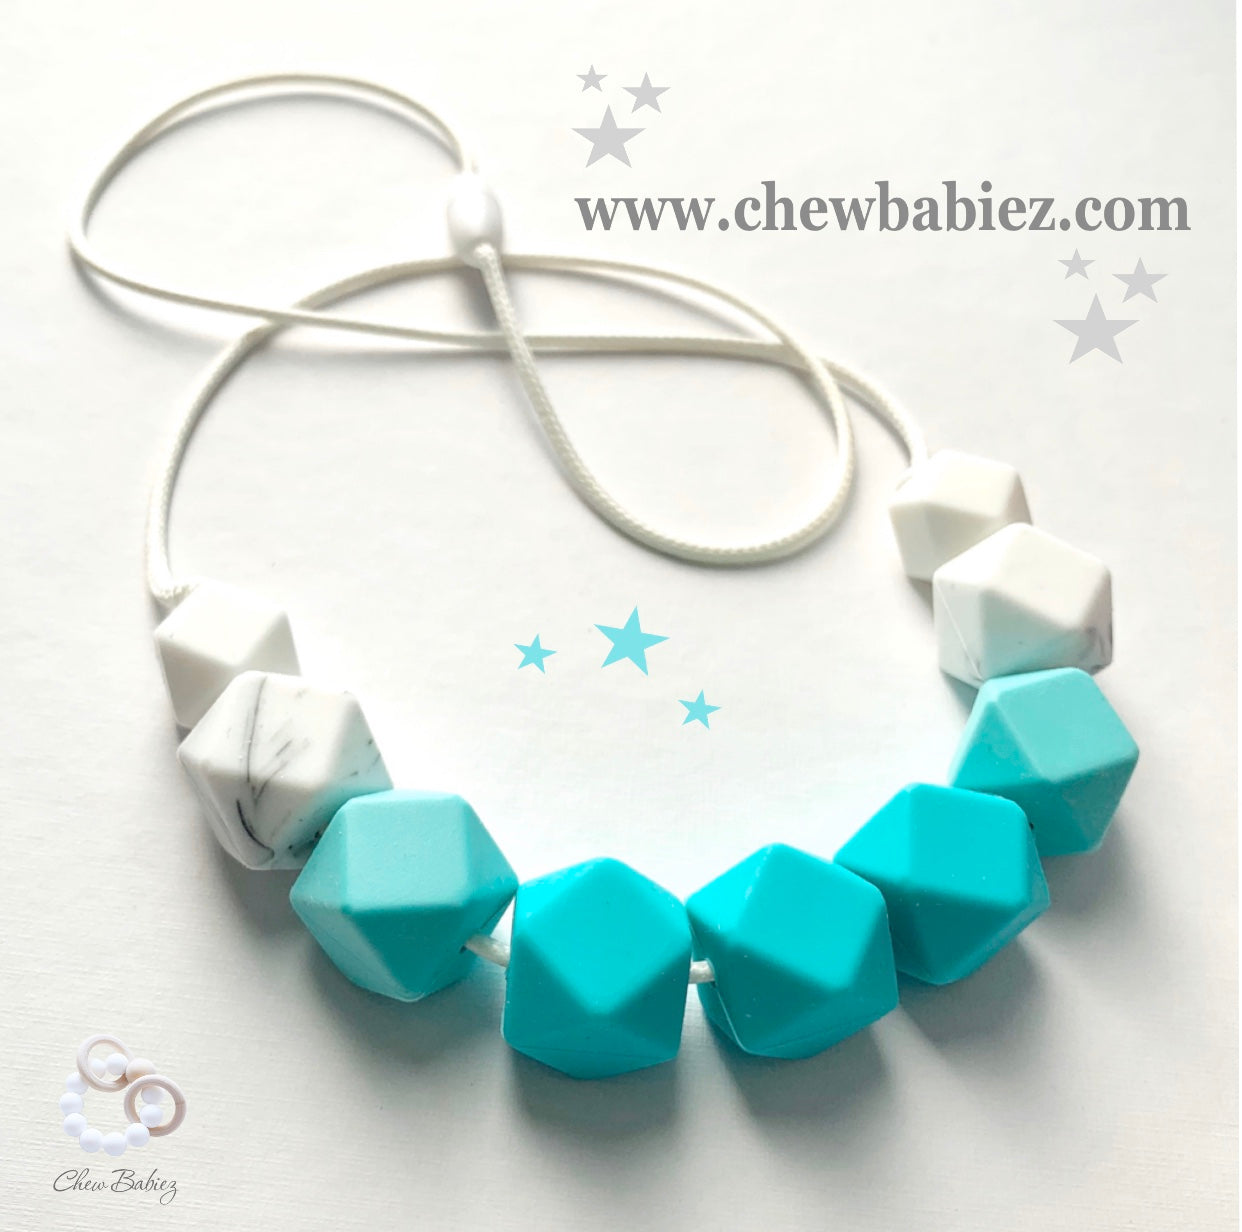 Turquoise Teething Necklace